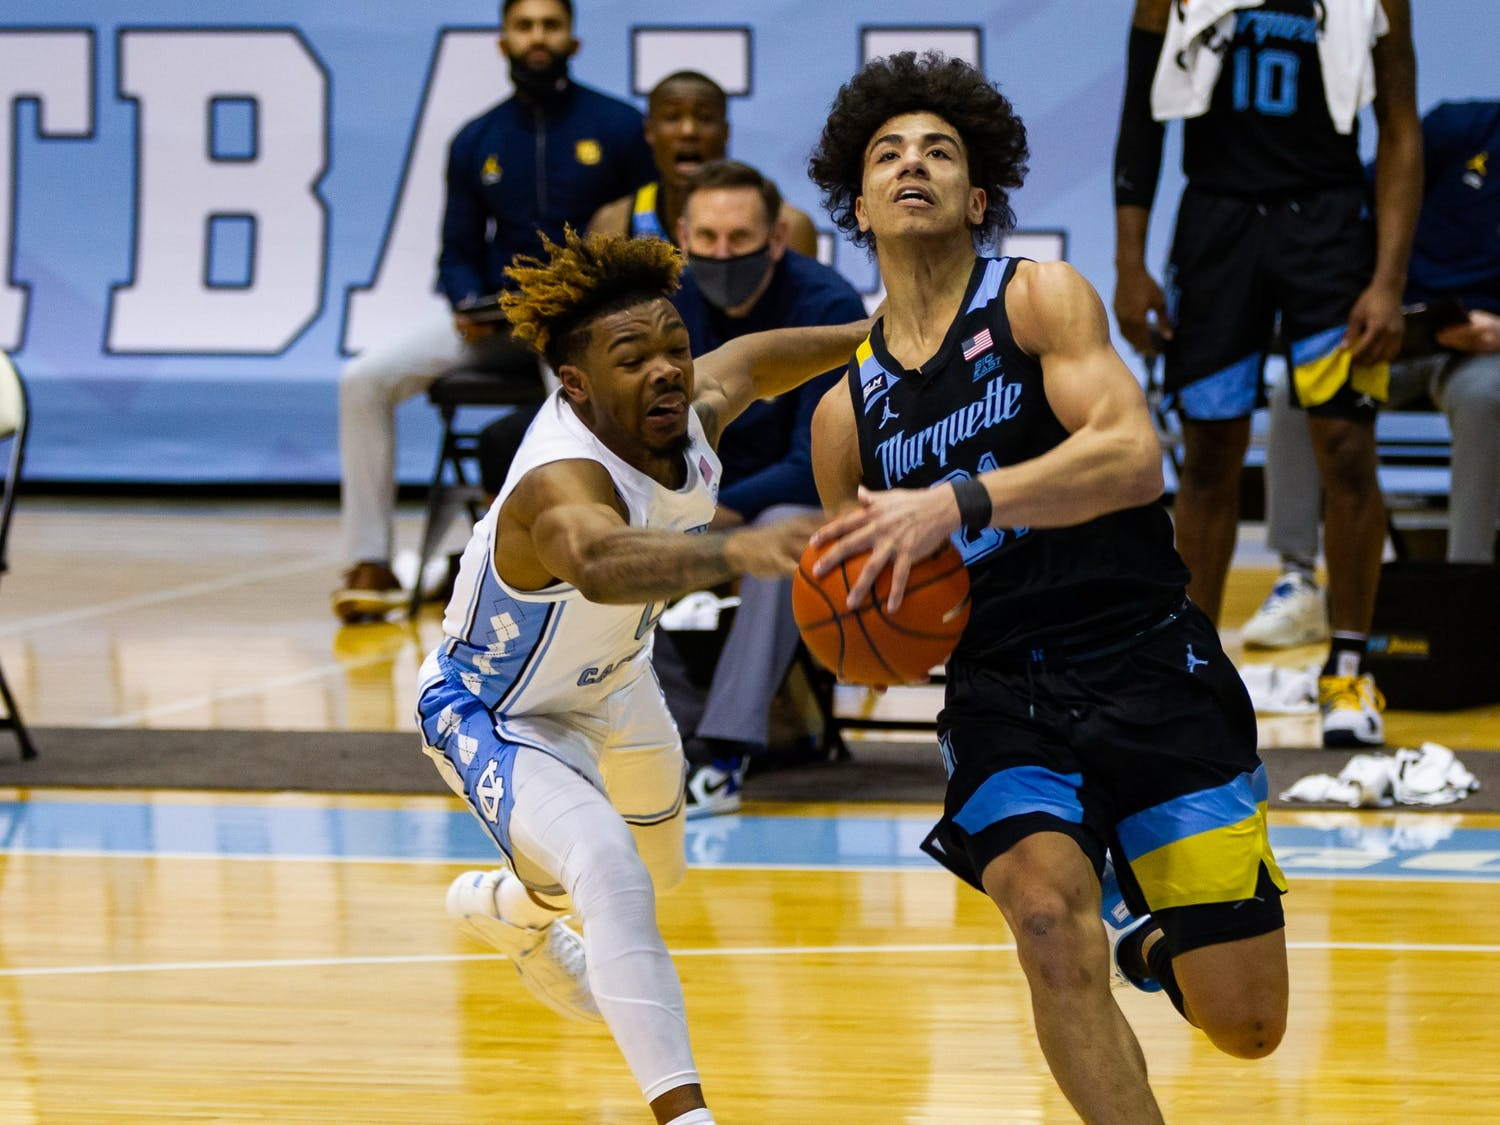 UNC redshirt first year guard Anthony Harris (0) attempts to knock the ball out of the hands of Marquette sophomore guard D.J. Carton (21) during a game in the Smith Center on Wednesday, Feb. 24, 202. UNC lost to Marquette 83-70.